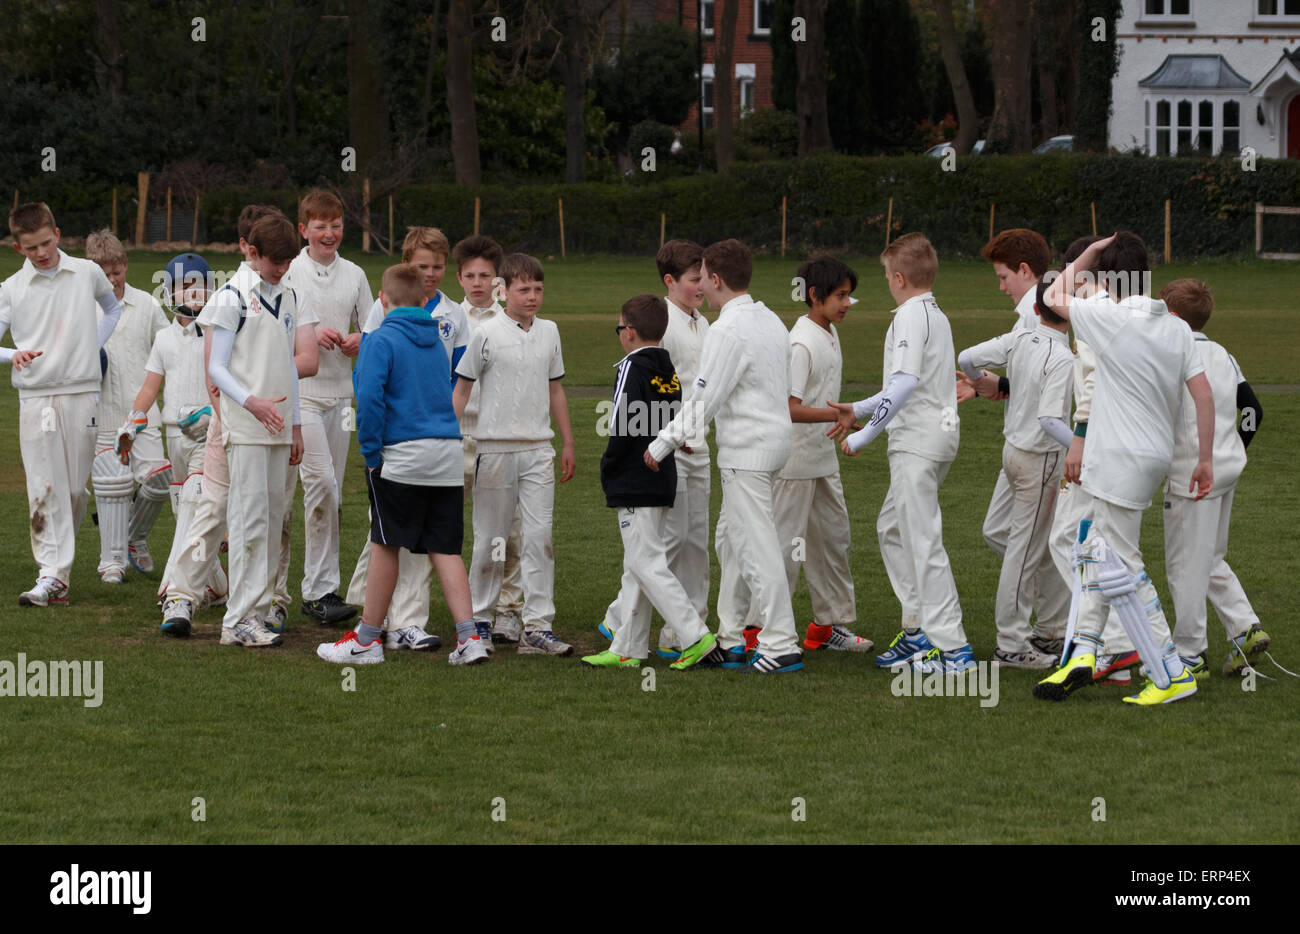 U13 boys cricket teams shaking hands with each other at the end of a match. - Stock Image